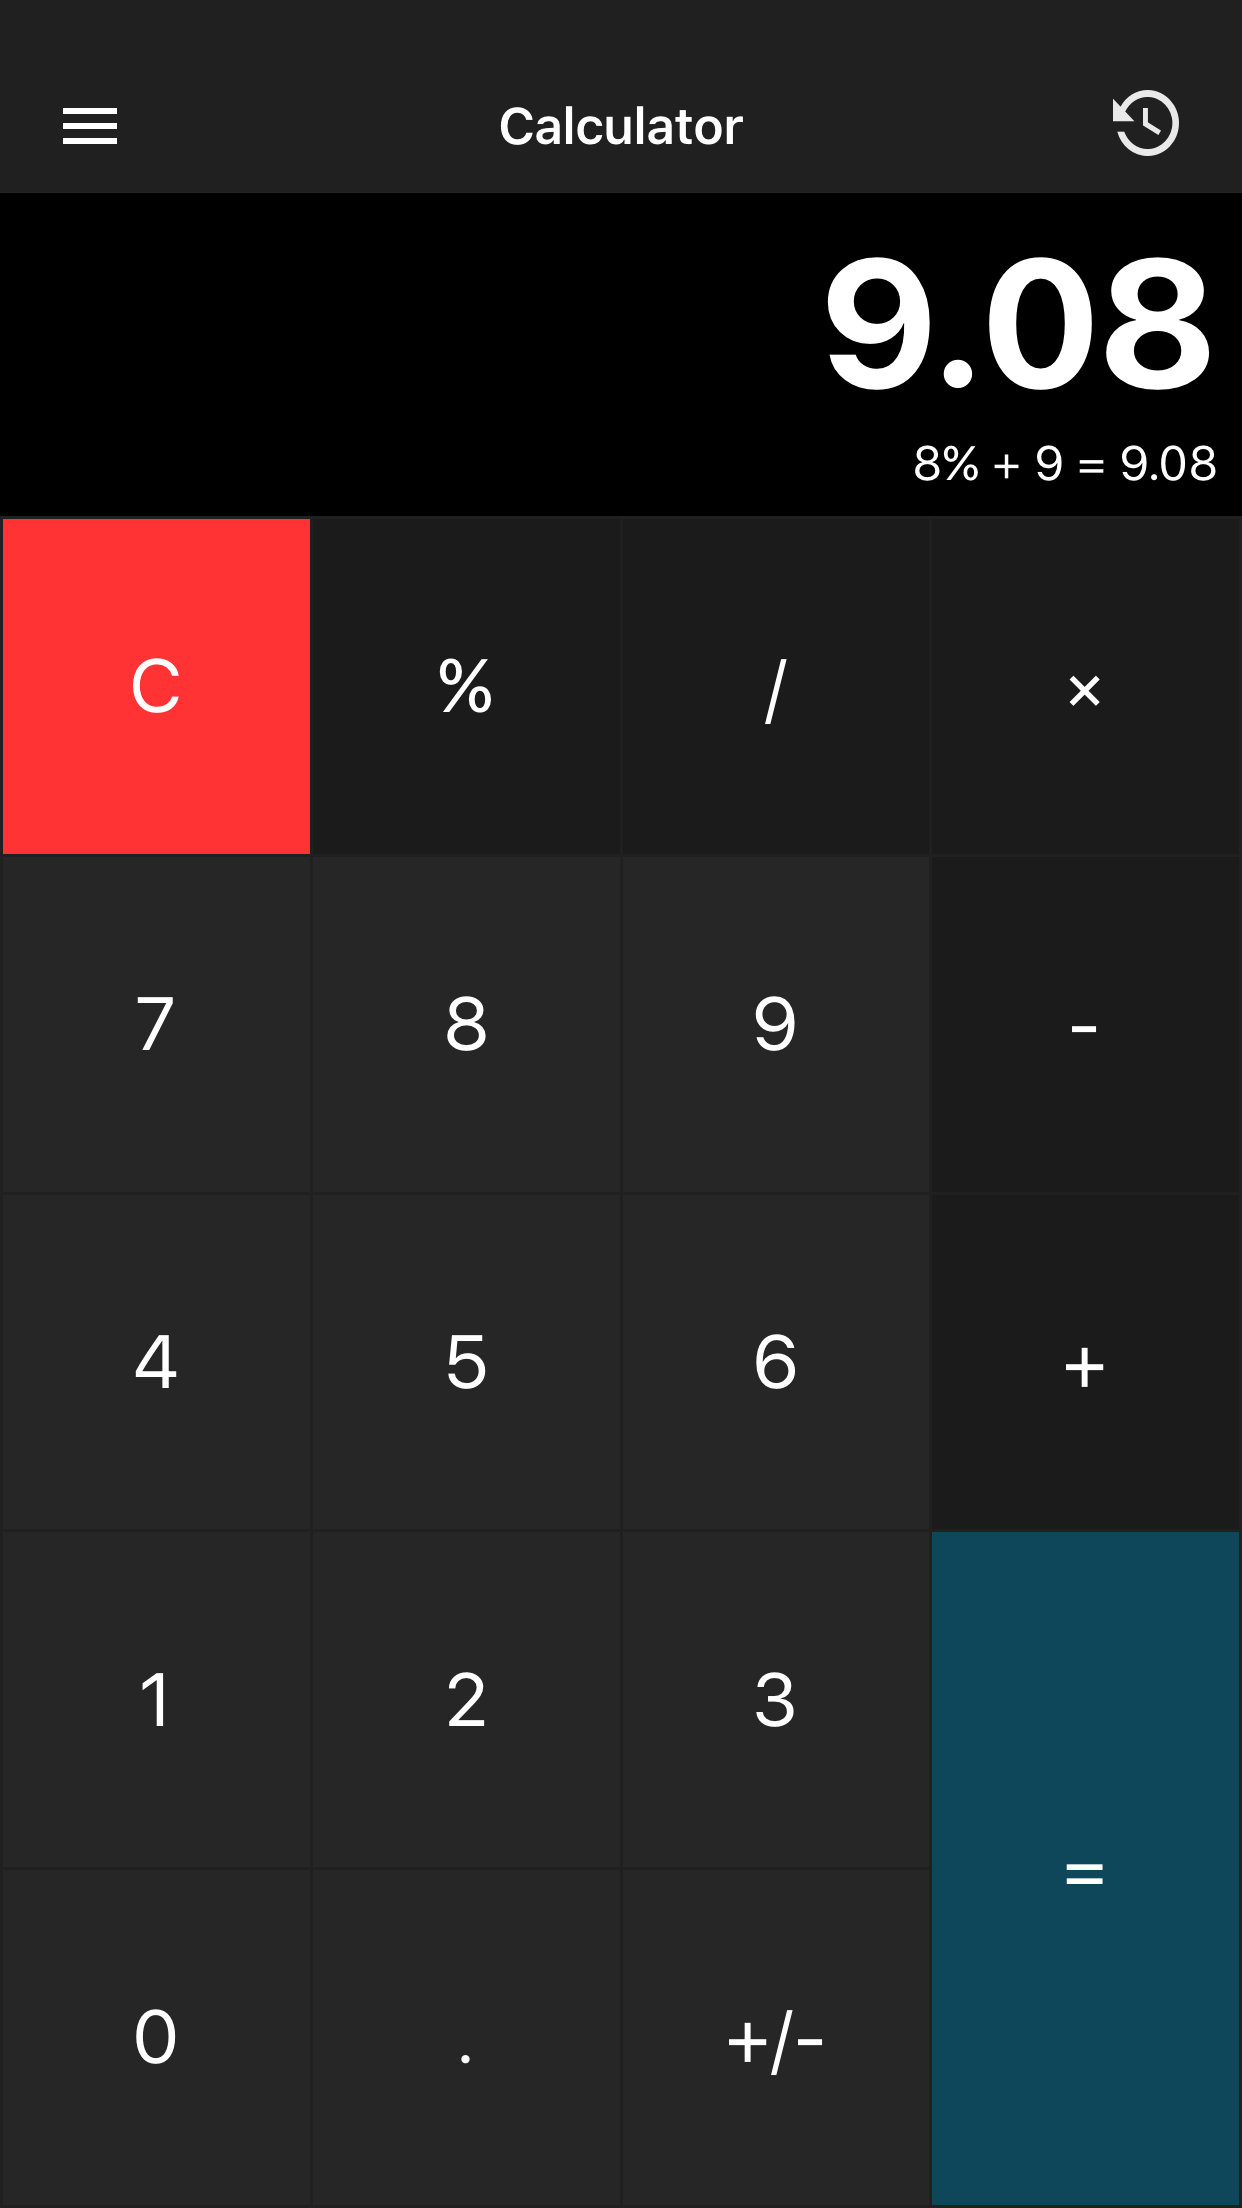 Calculator with history